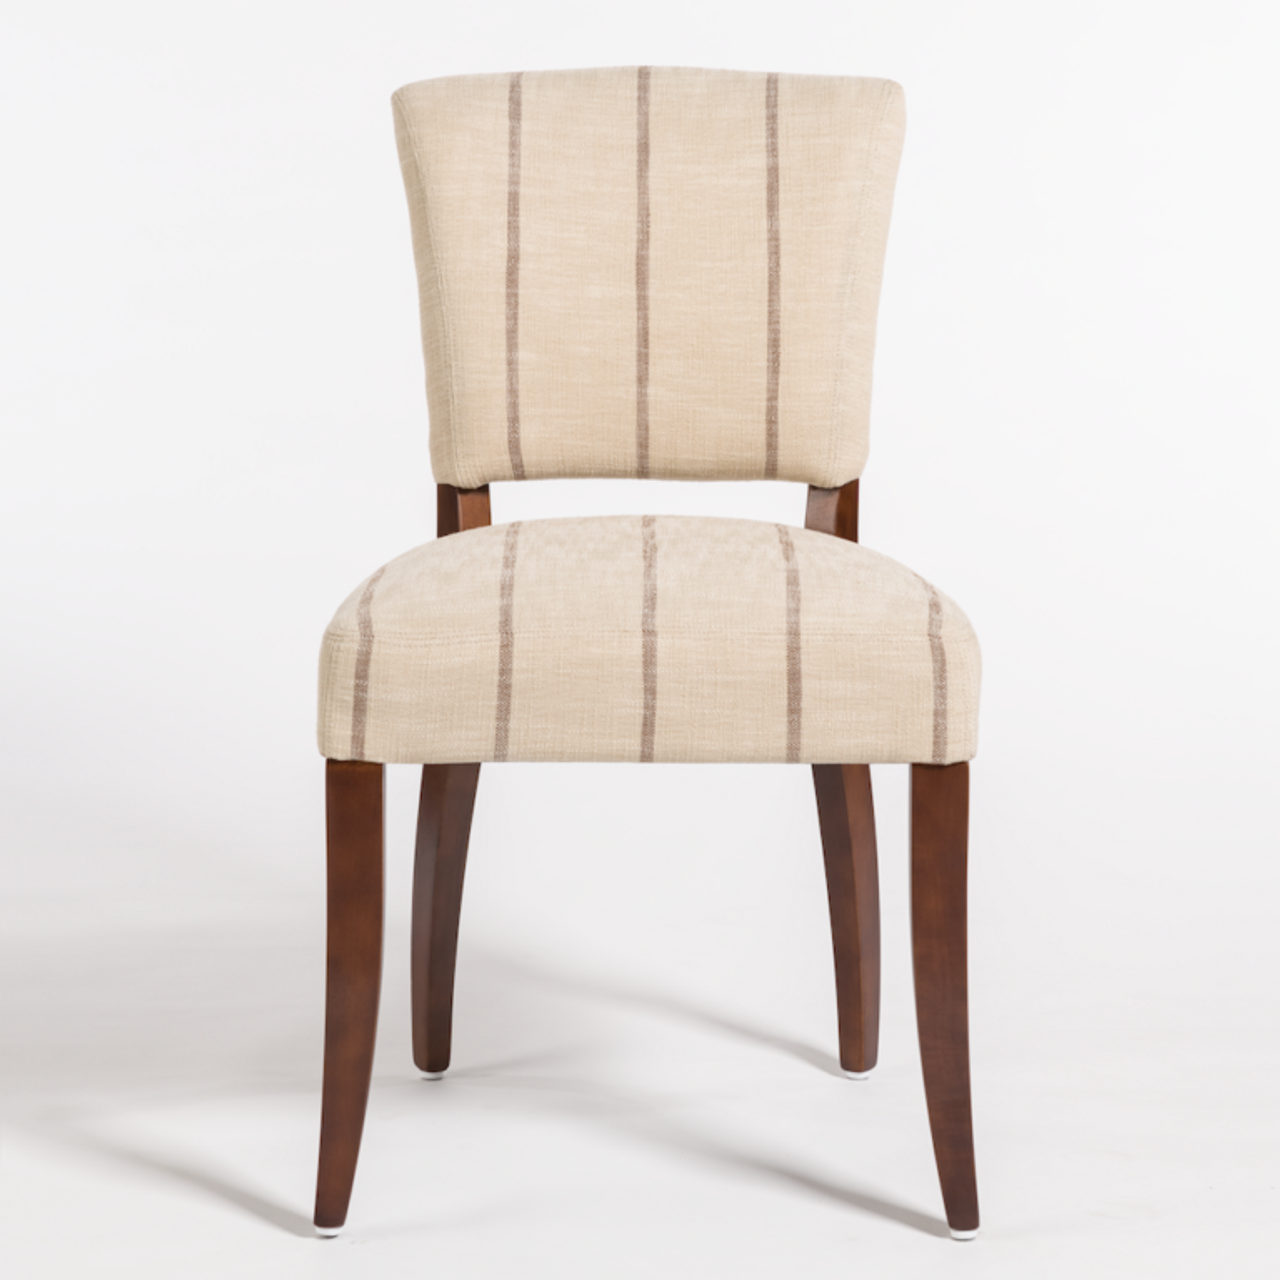 Super Ashford Dining Chair Lamtechconsult Wood Chair Design Ideas Lamtechconsultcom